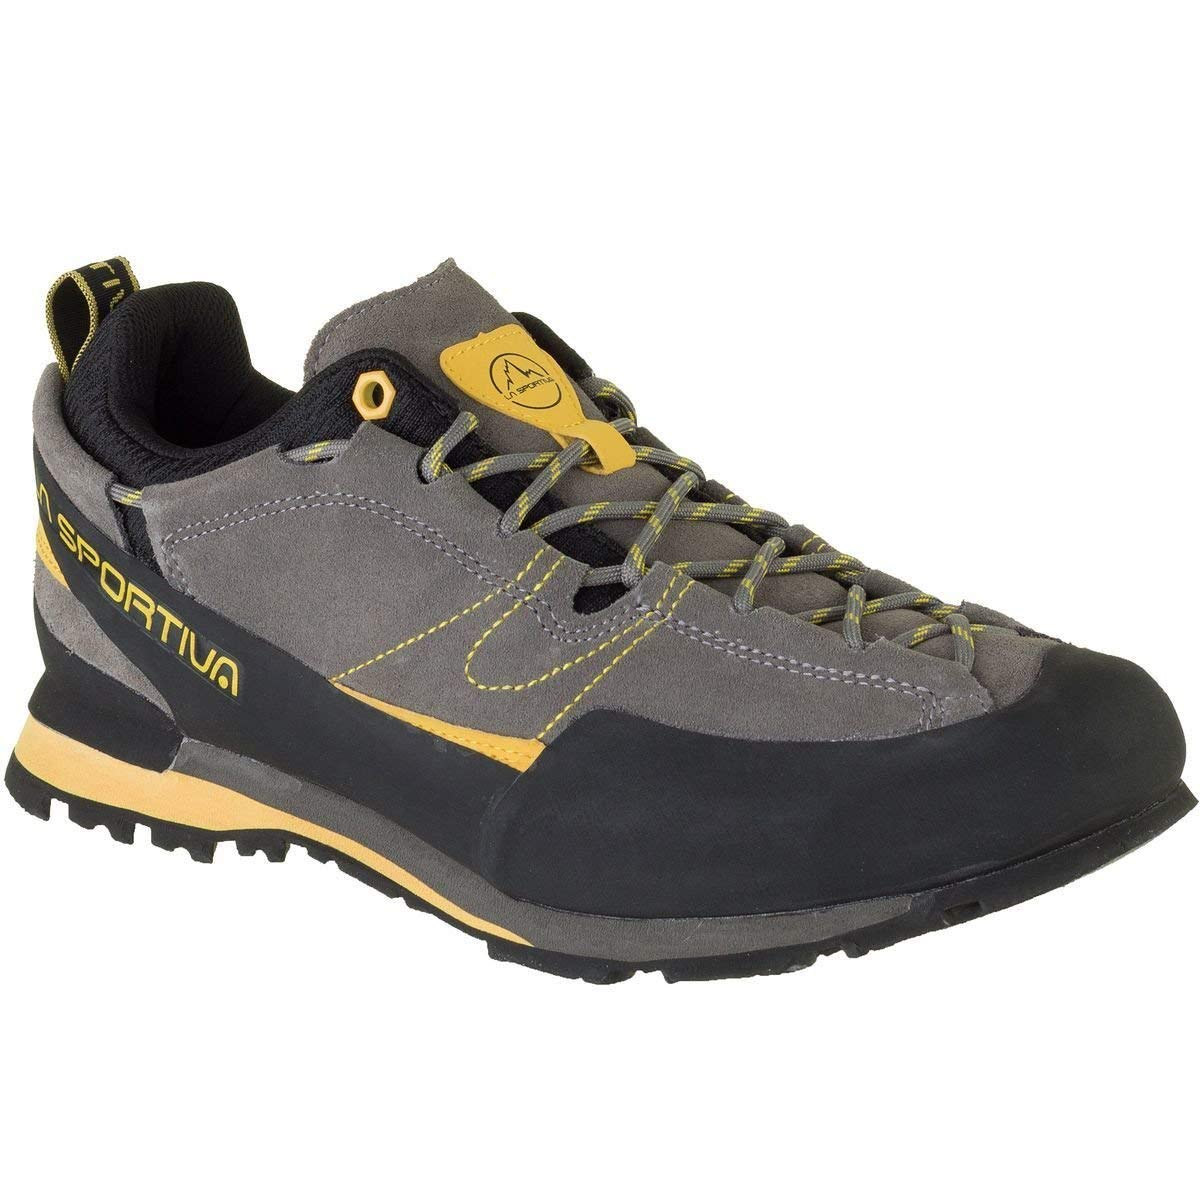 La Sportiva Boulder X Approach Shoes In Grey And Yellow